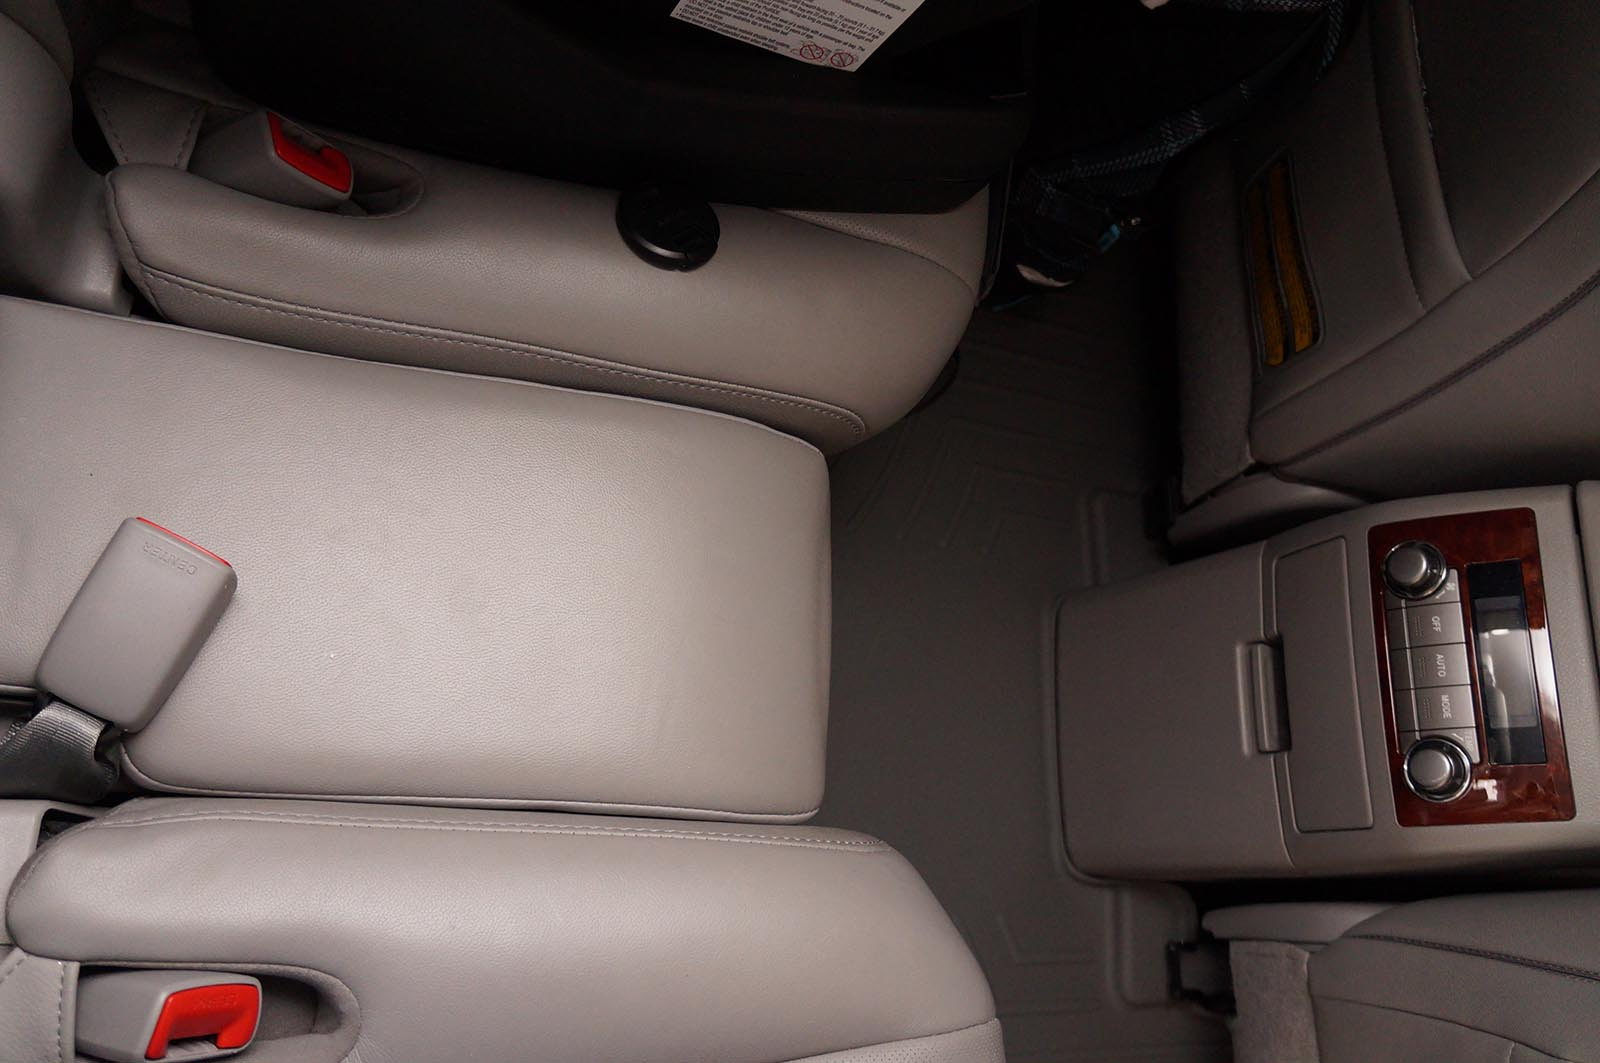 2012 Toyota Highlander middle seat 1 by Sarah Franzen